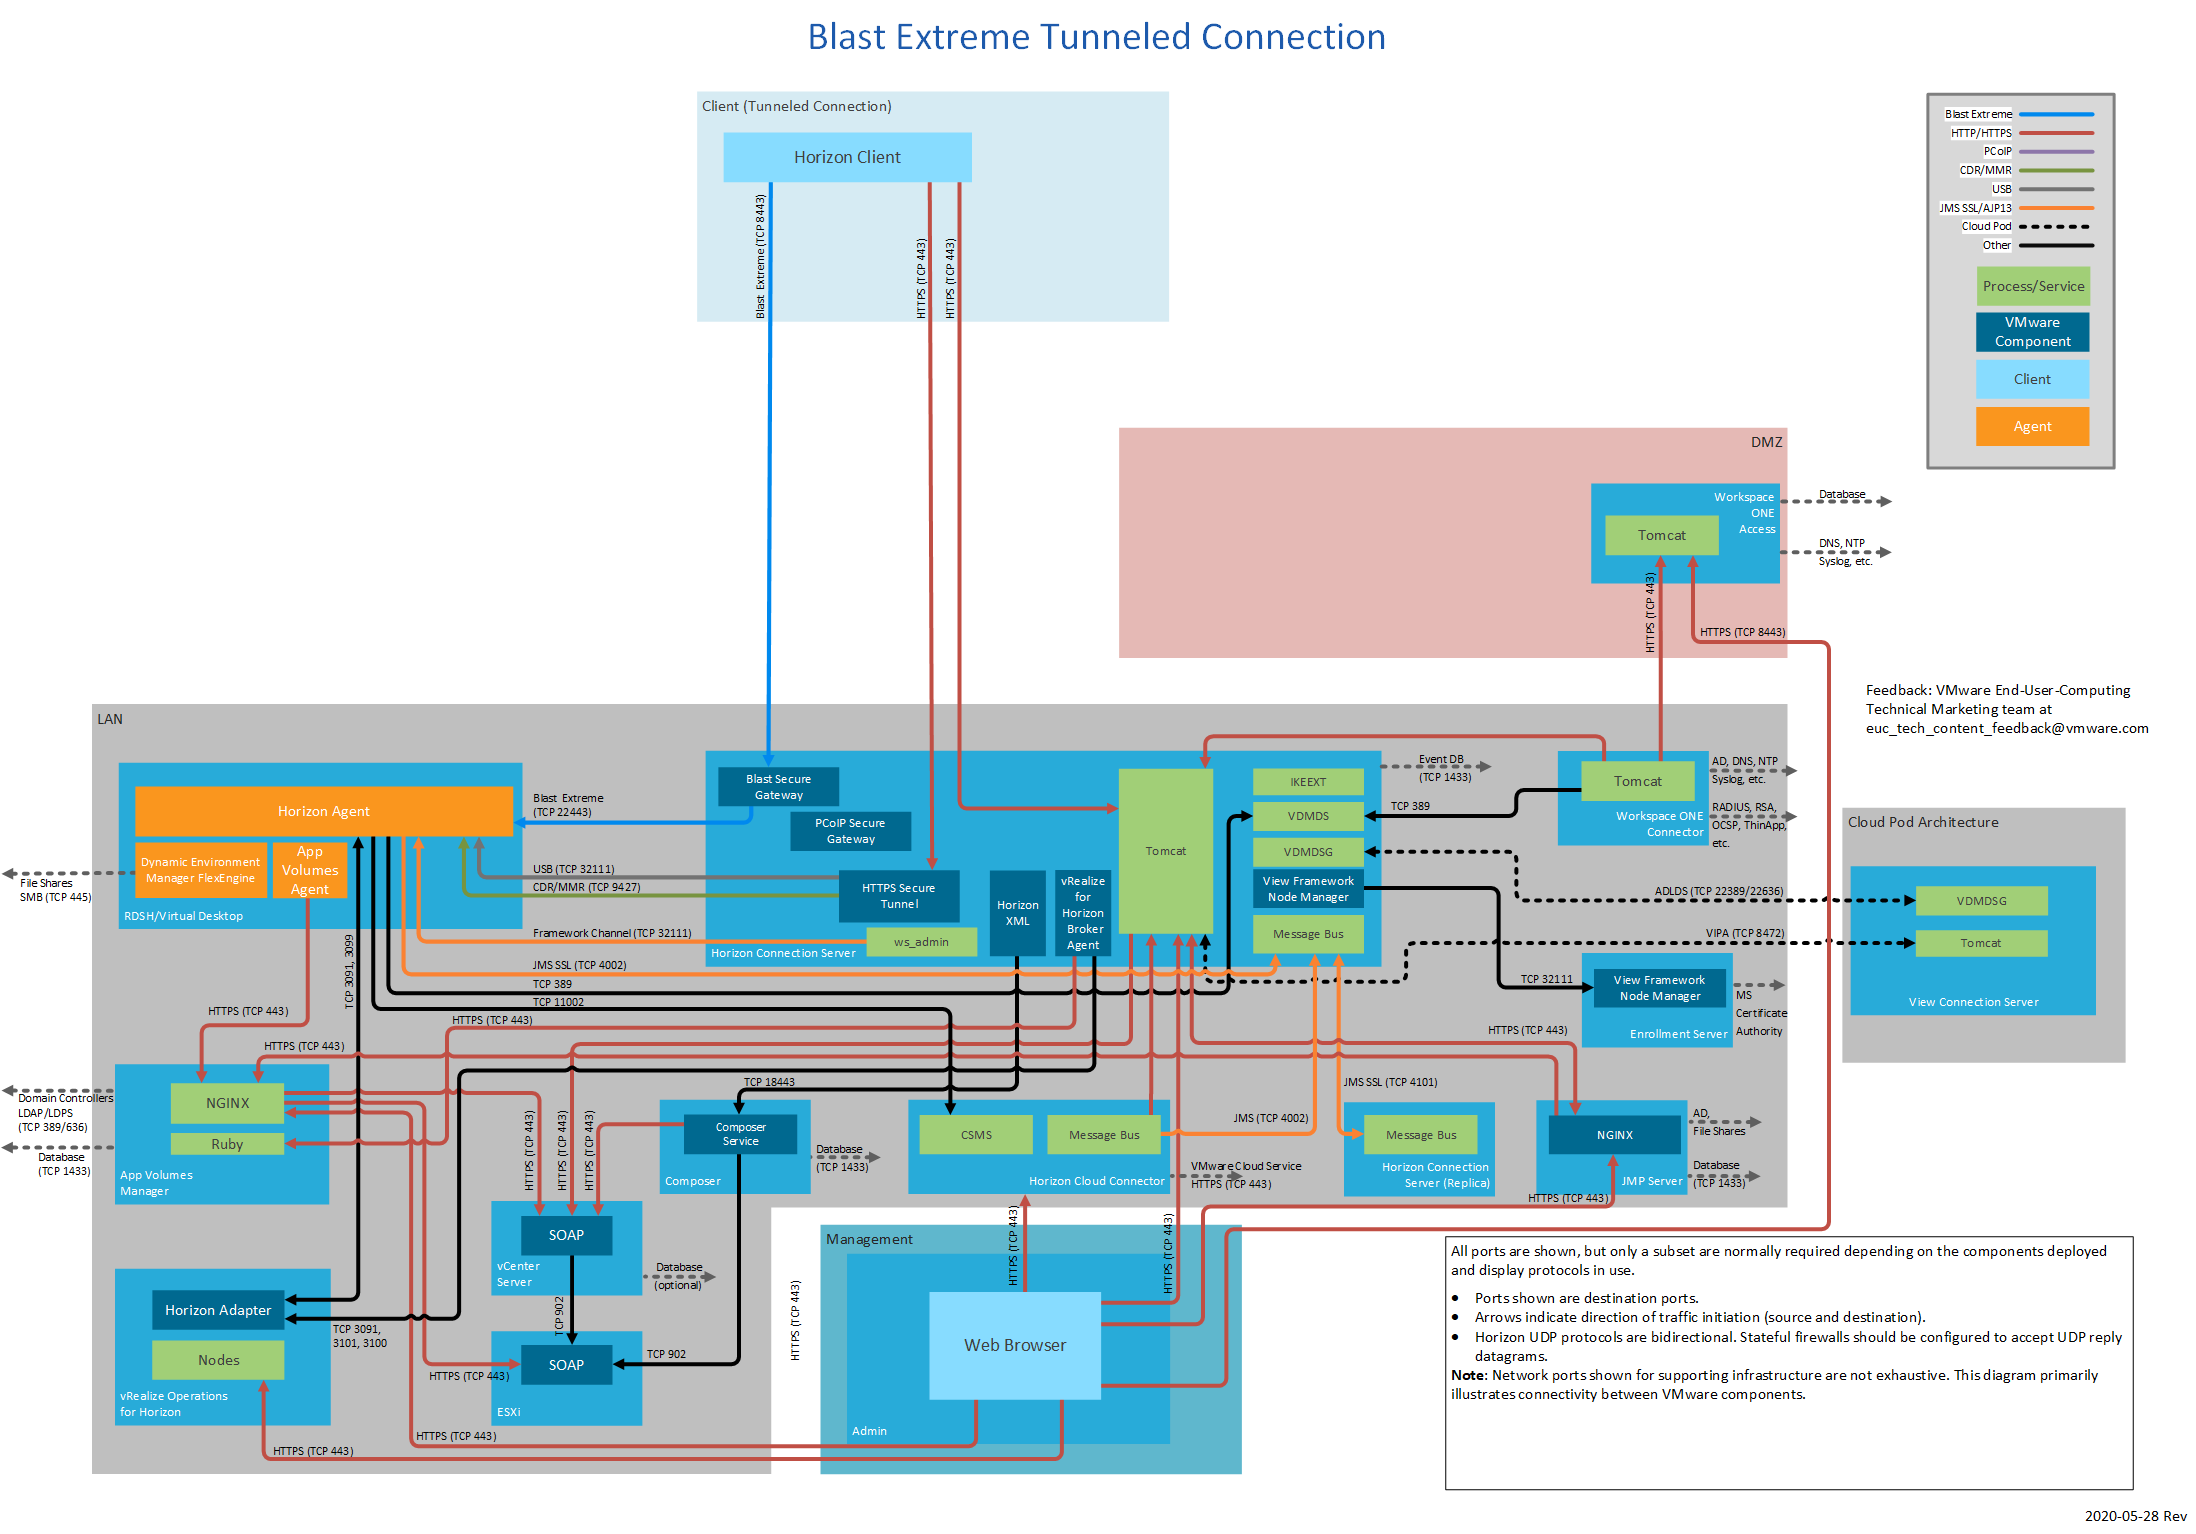 Network ports for Blast extreme tunneled connections.